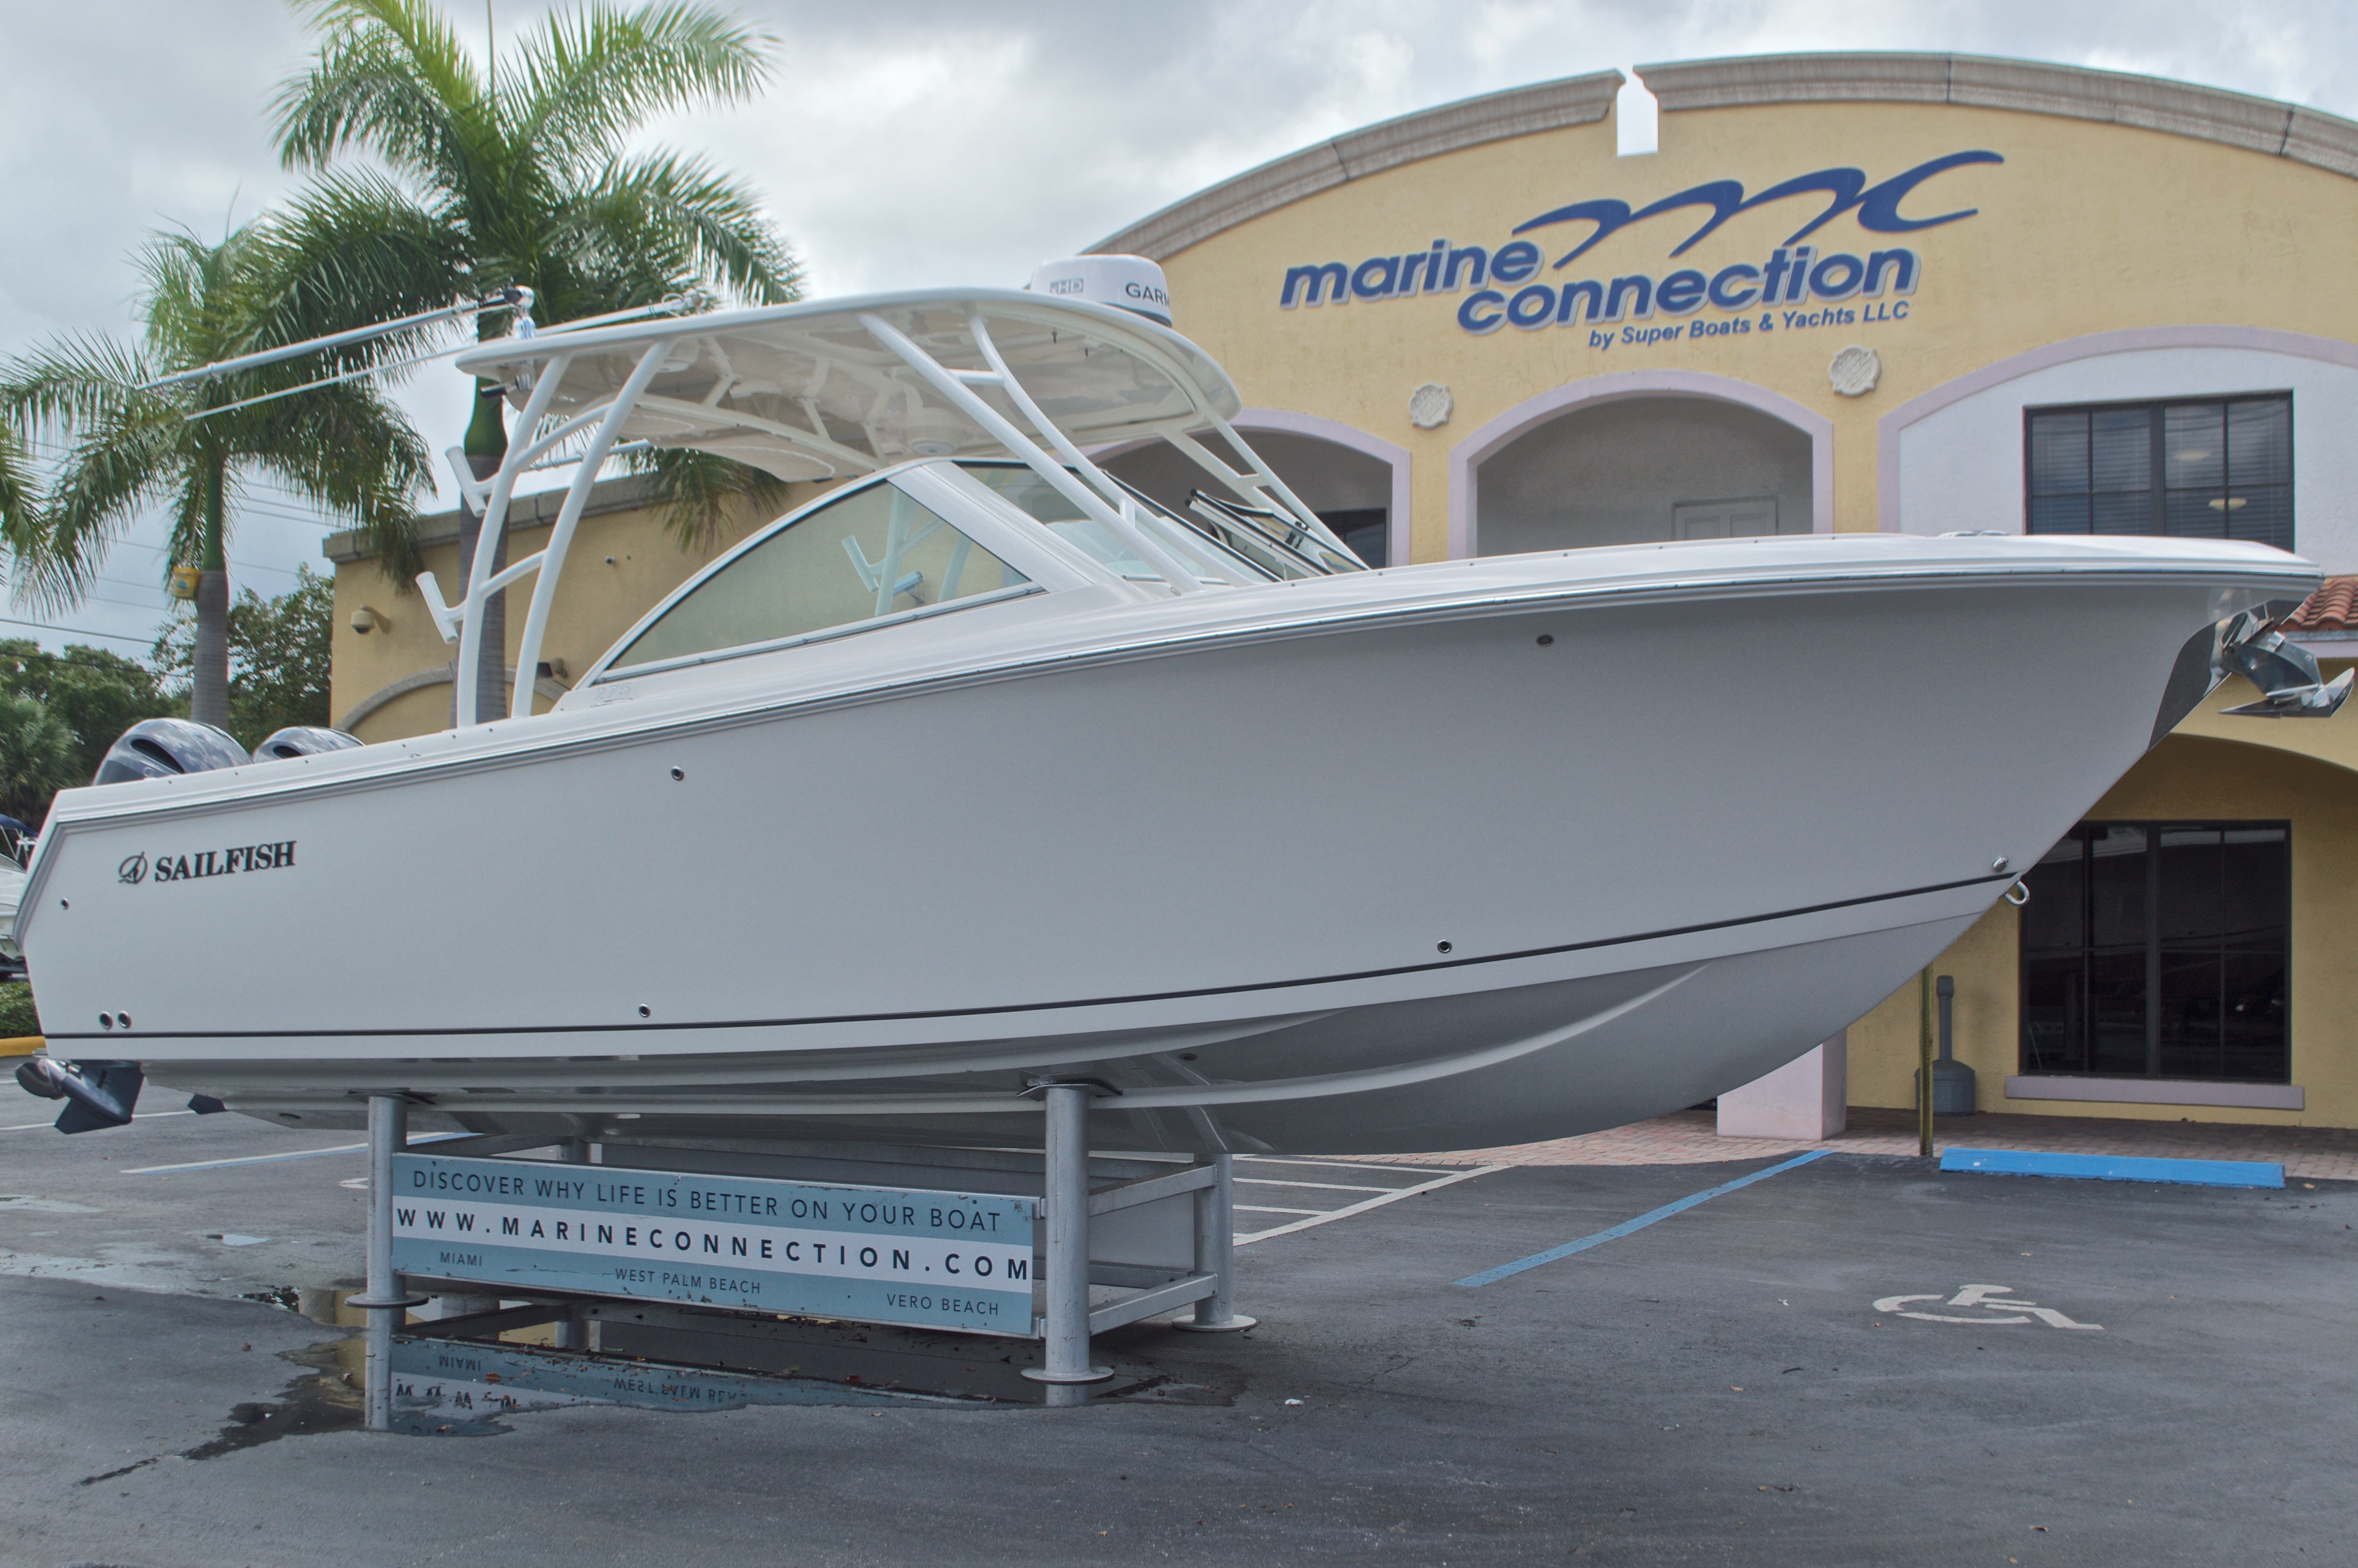 Thumbnail 1 for Used 2016 Sailfish 275 Dual Console boat for sale in West Palm Beach, FL